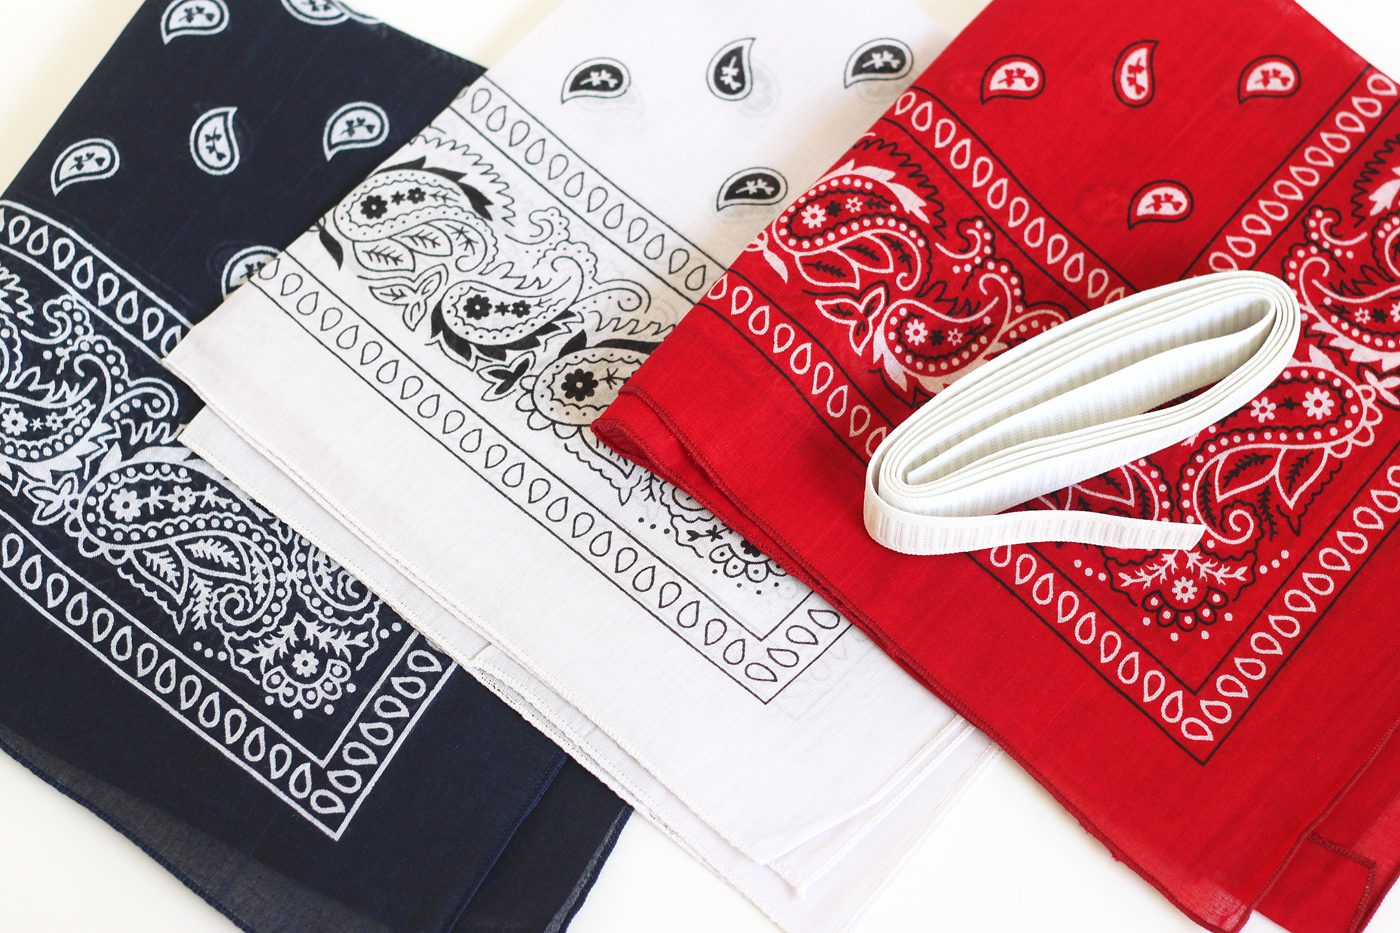 Red, white, and blue bandanas with elastic